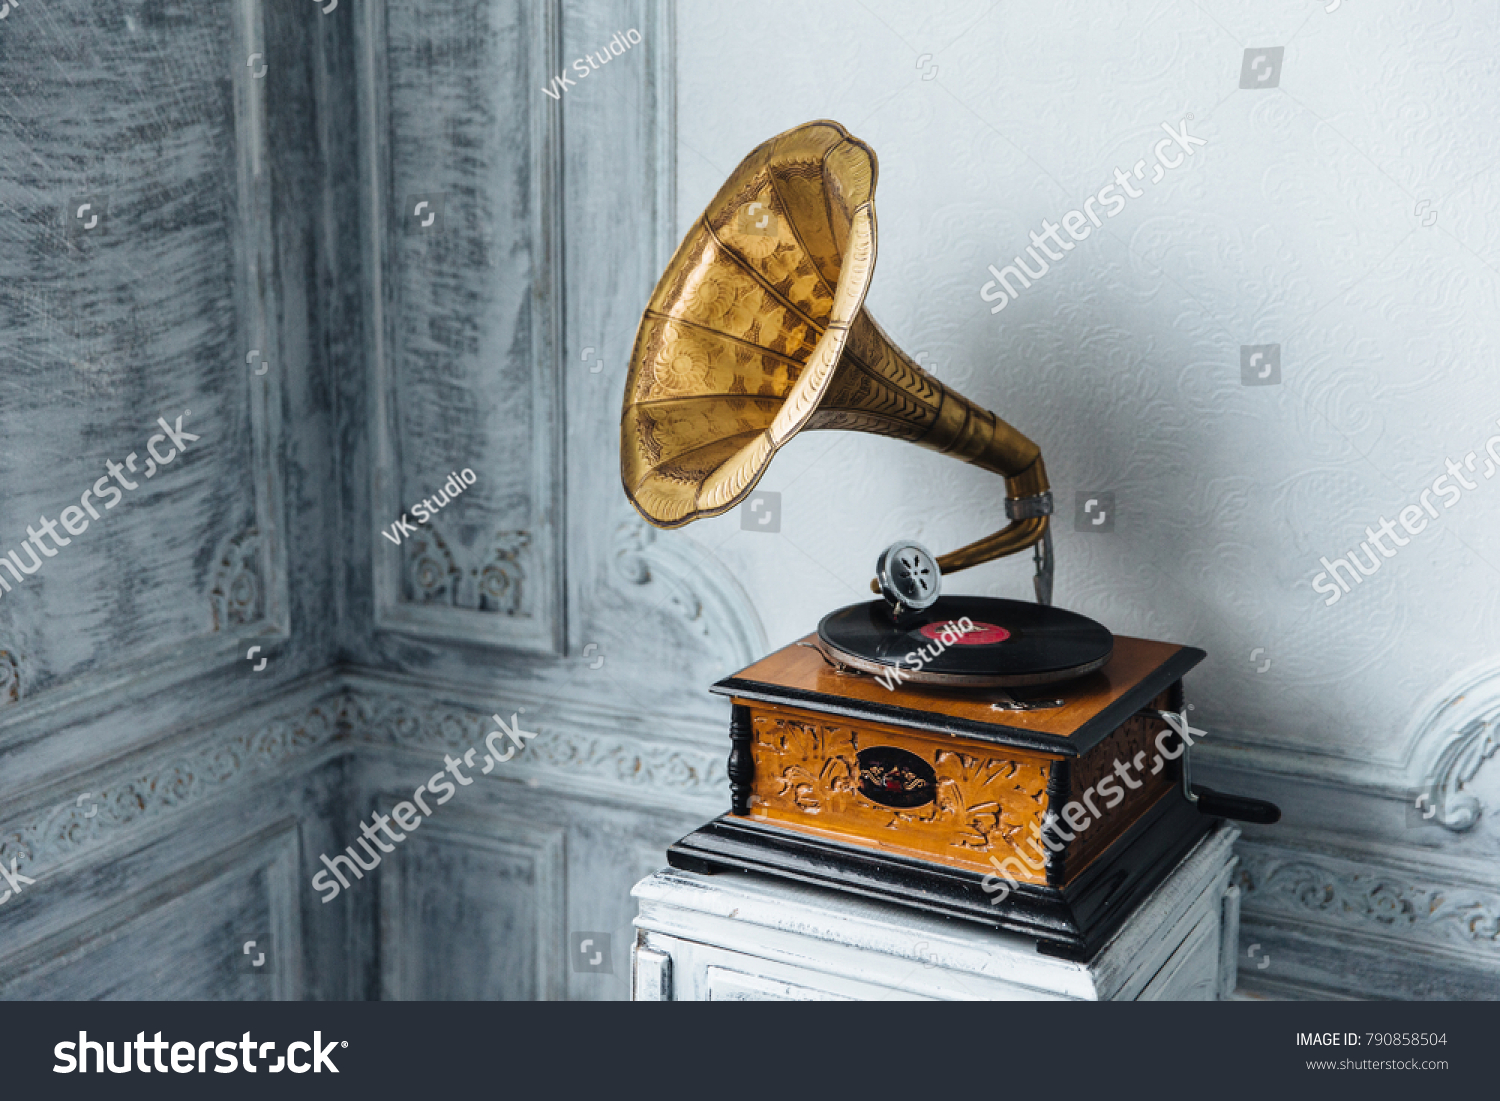 Music device. Old gramophone with plate or vinyl disk on wooden box. Antique brass record player. Gramophone with horn speaker. Retro entertainment concept. #790858504